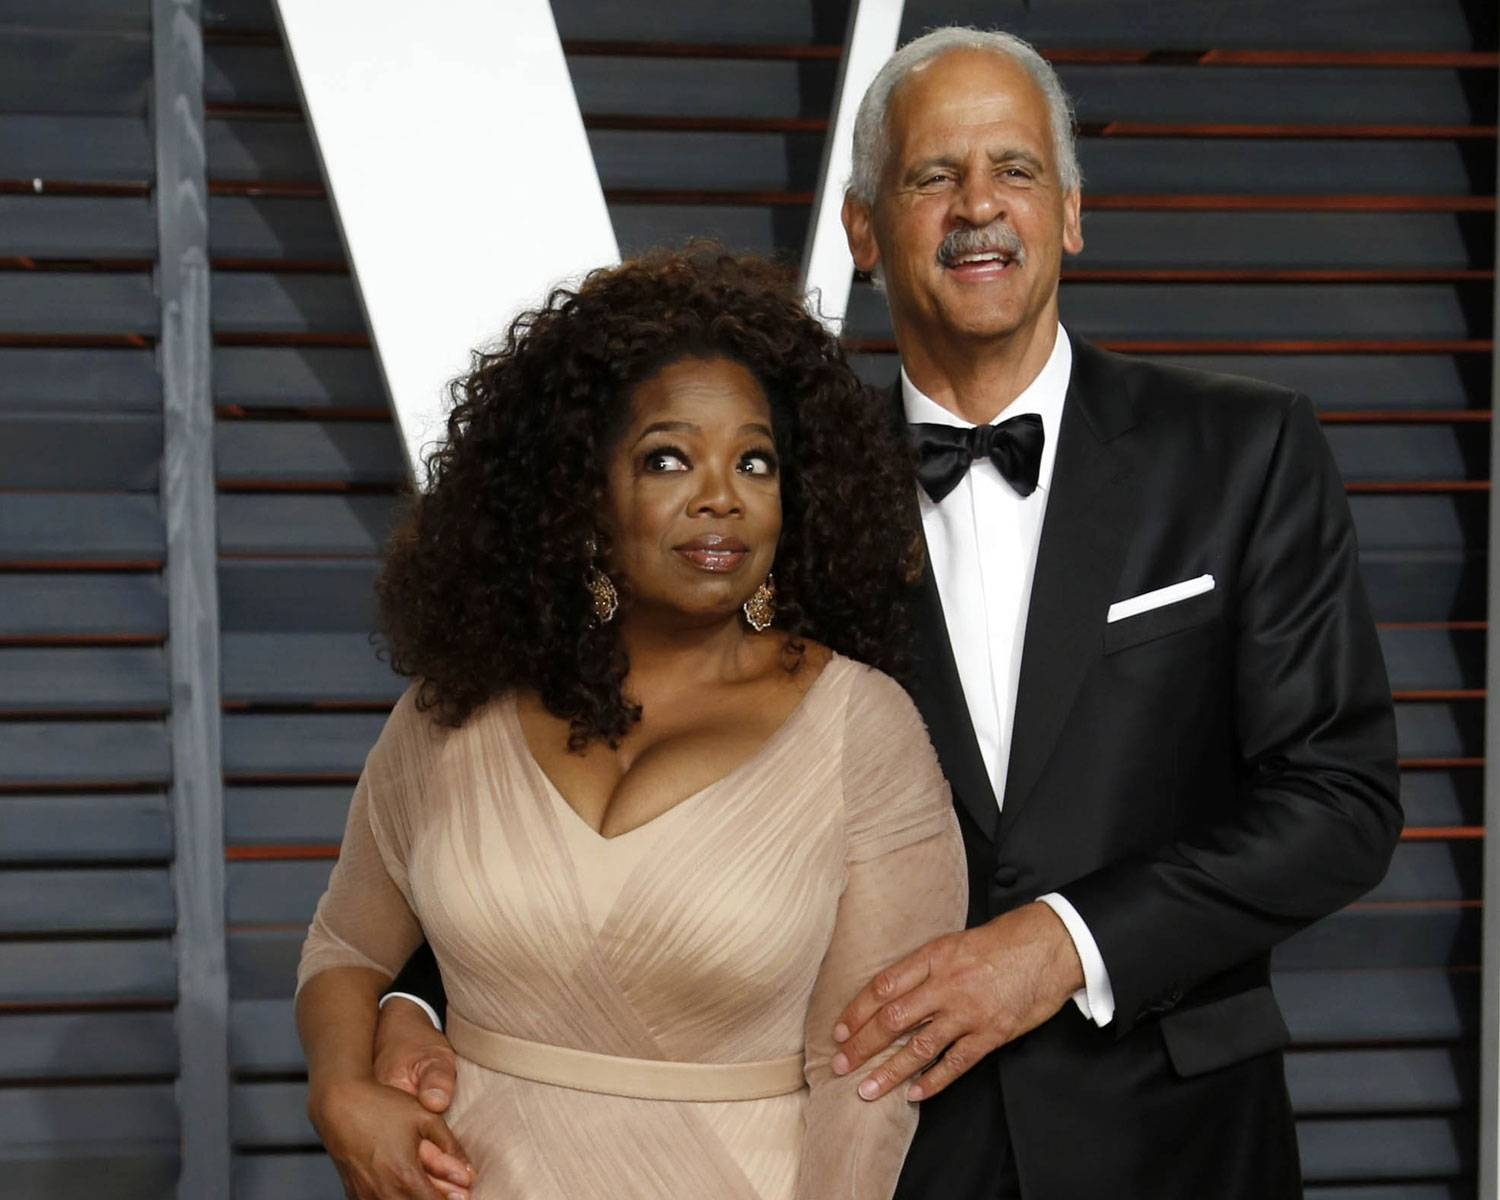 Oprah On Why She Never Married Longtime Partner Stedman Graham Intended For Oprah Wedding Rings (View 9 of 15)